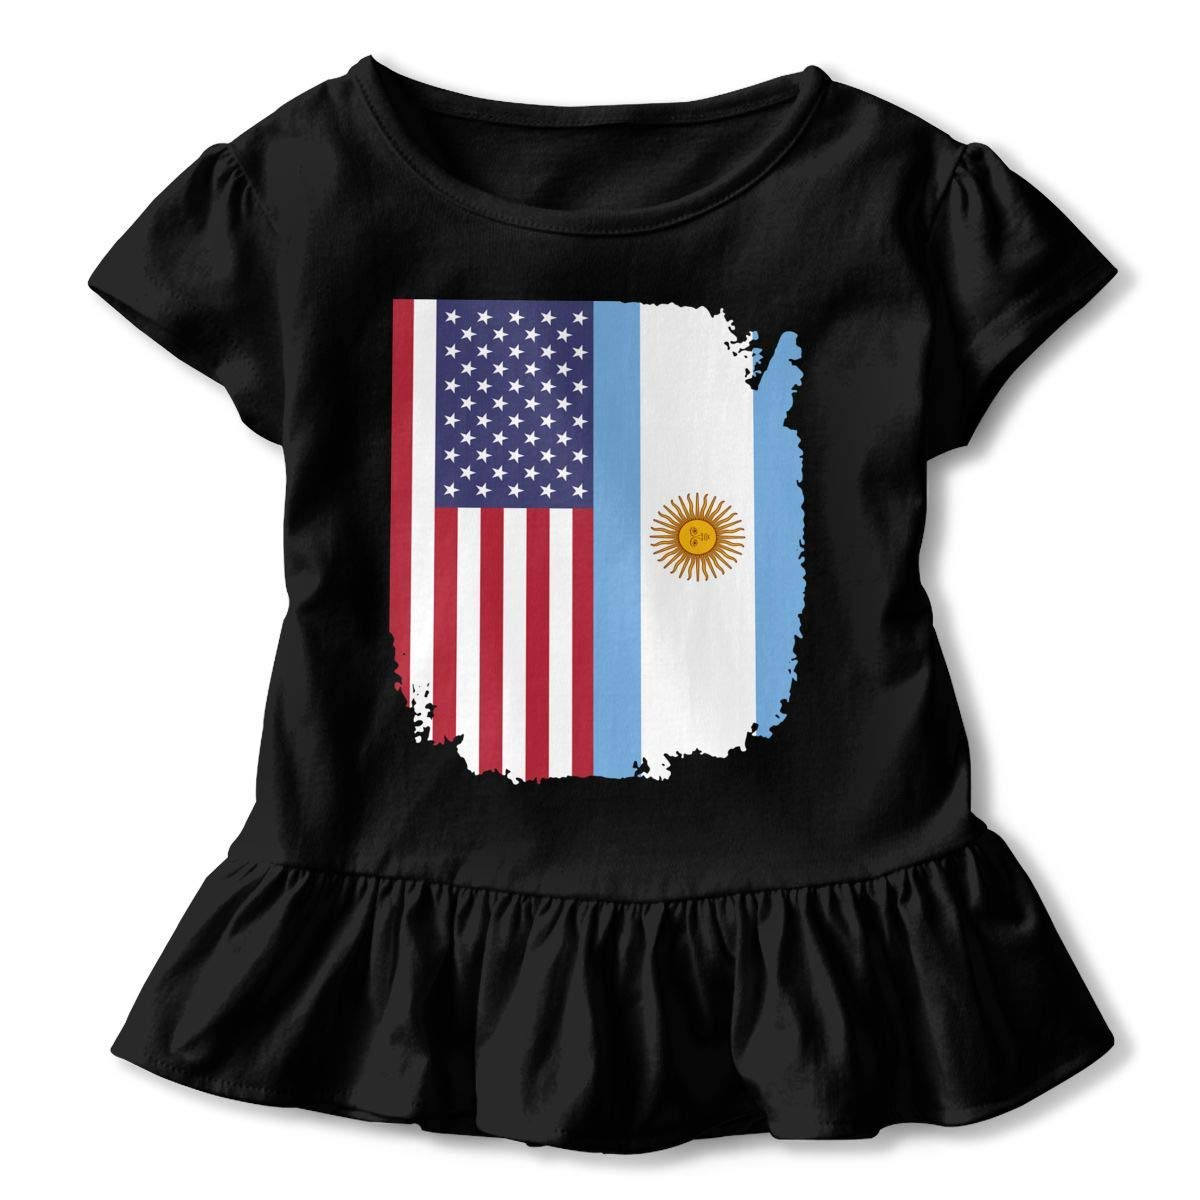 PMsunglasses Short Sleeve American Argentina Flag Shirts for Kids Fashion Tunic Tops with Falbala 2-6T